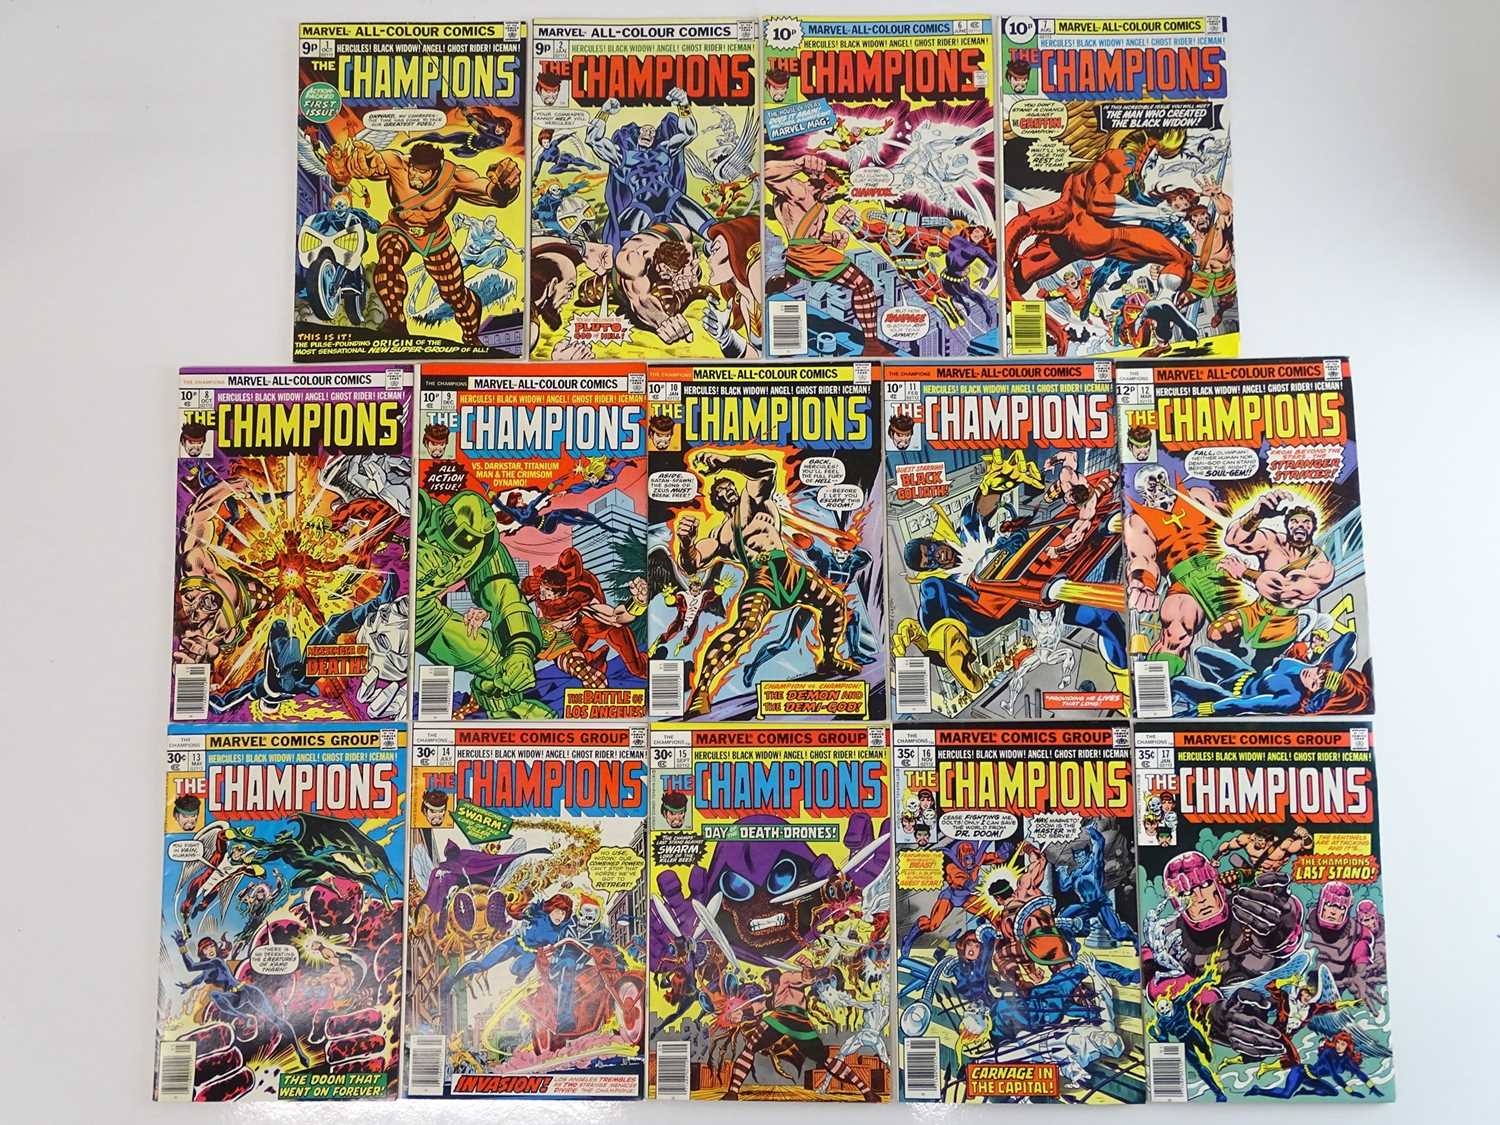 CHAMPIONS #1, 2, 6, 7, 8, 9, 10, 11, 12, 13, 14, 15, 16, 17 - (14 in Lot) - (1975/77 - MARVEL - US